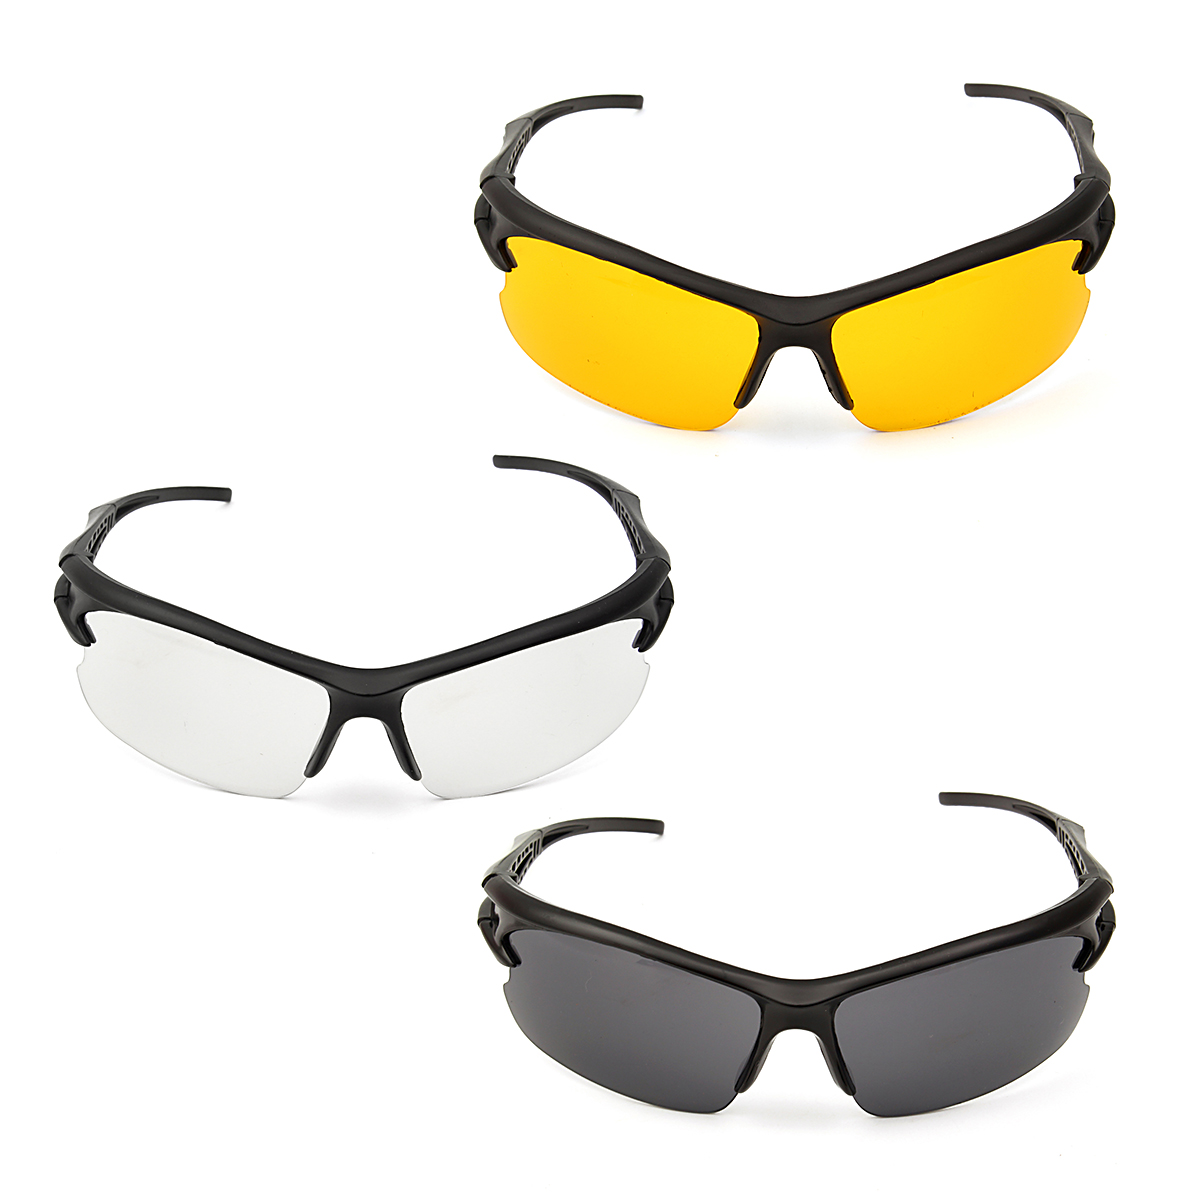 Wind and Dust Protective Goggles Glasses Eyewear Eyes Protection Anti-fog